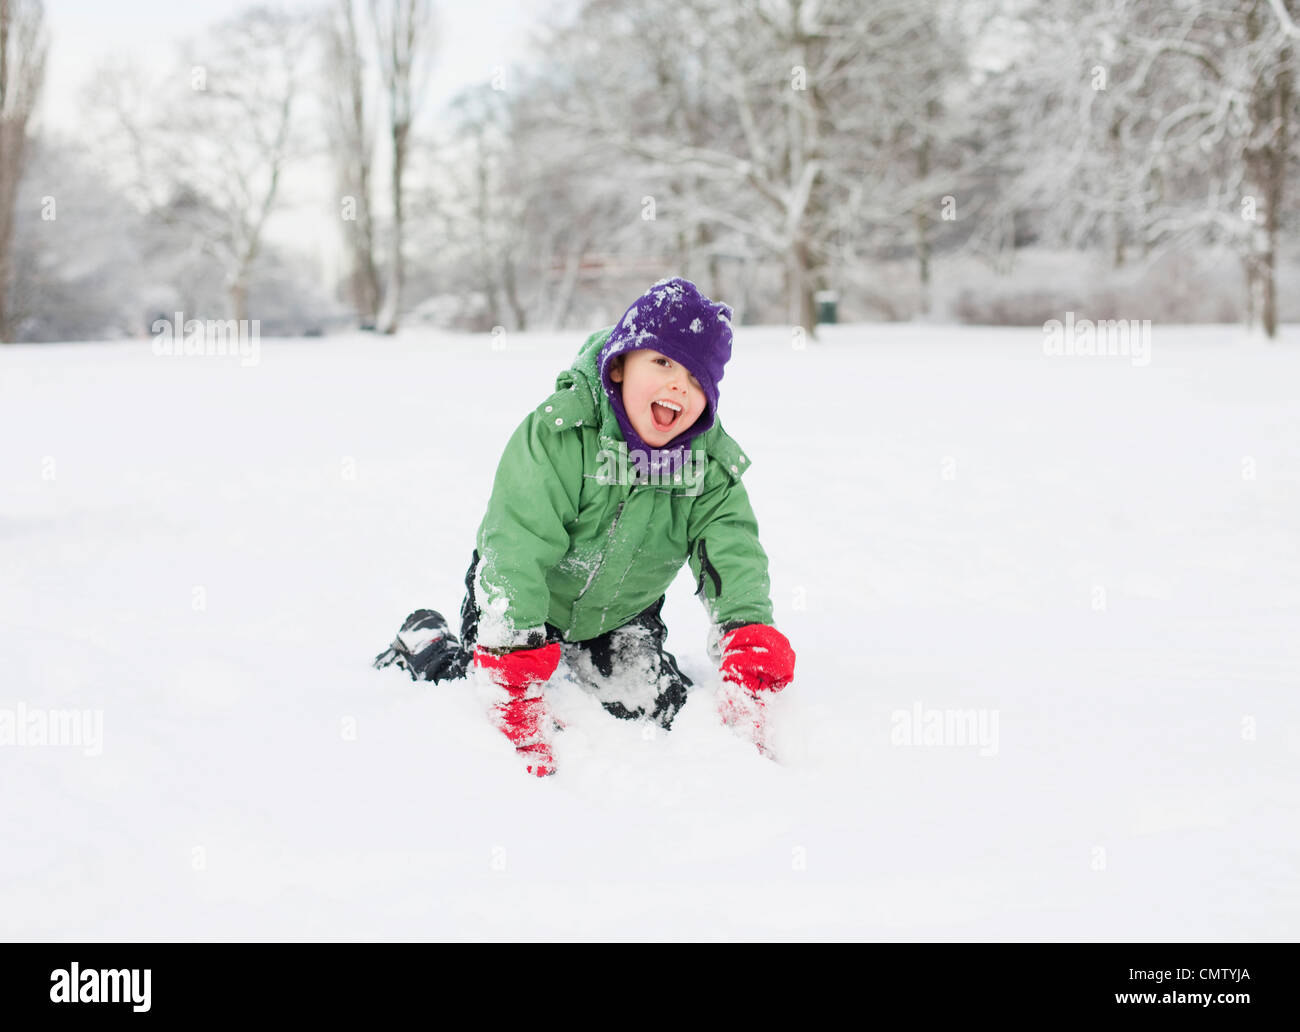 Boy plying in park - Stock Image